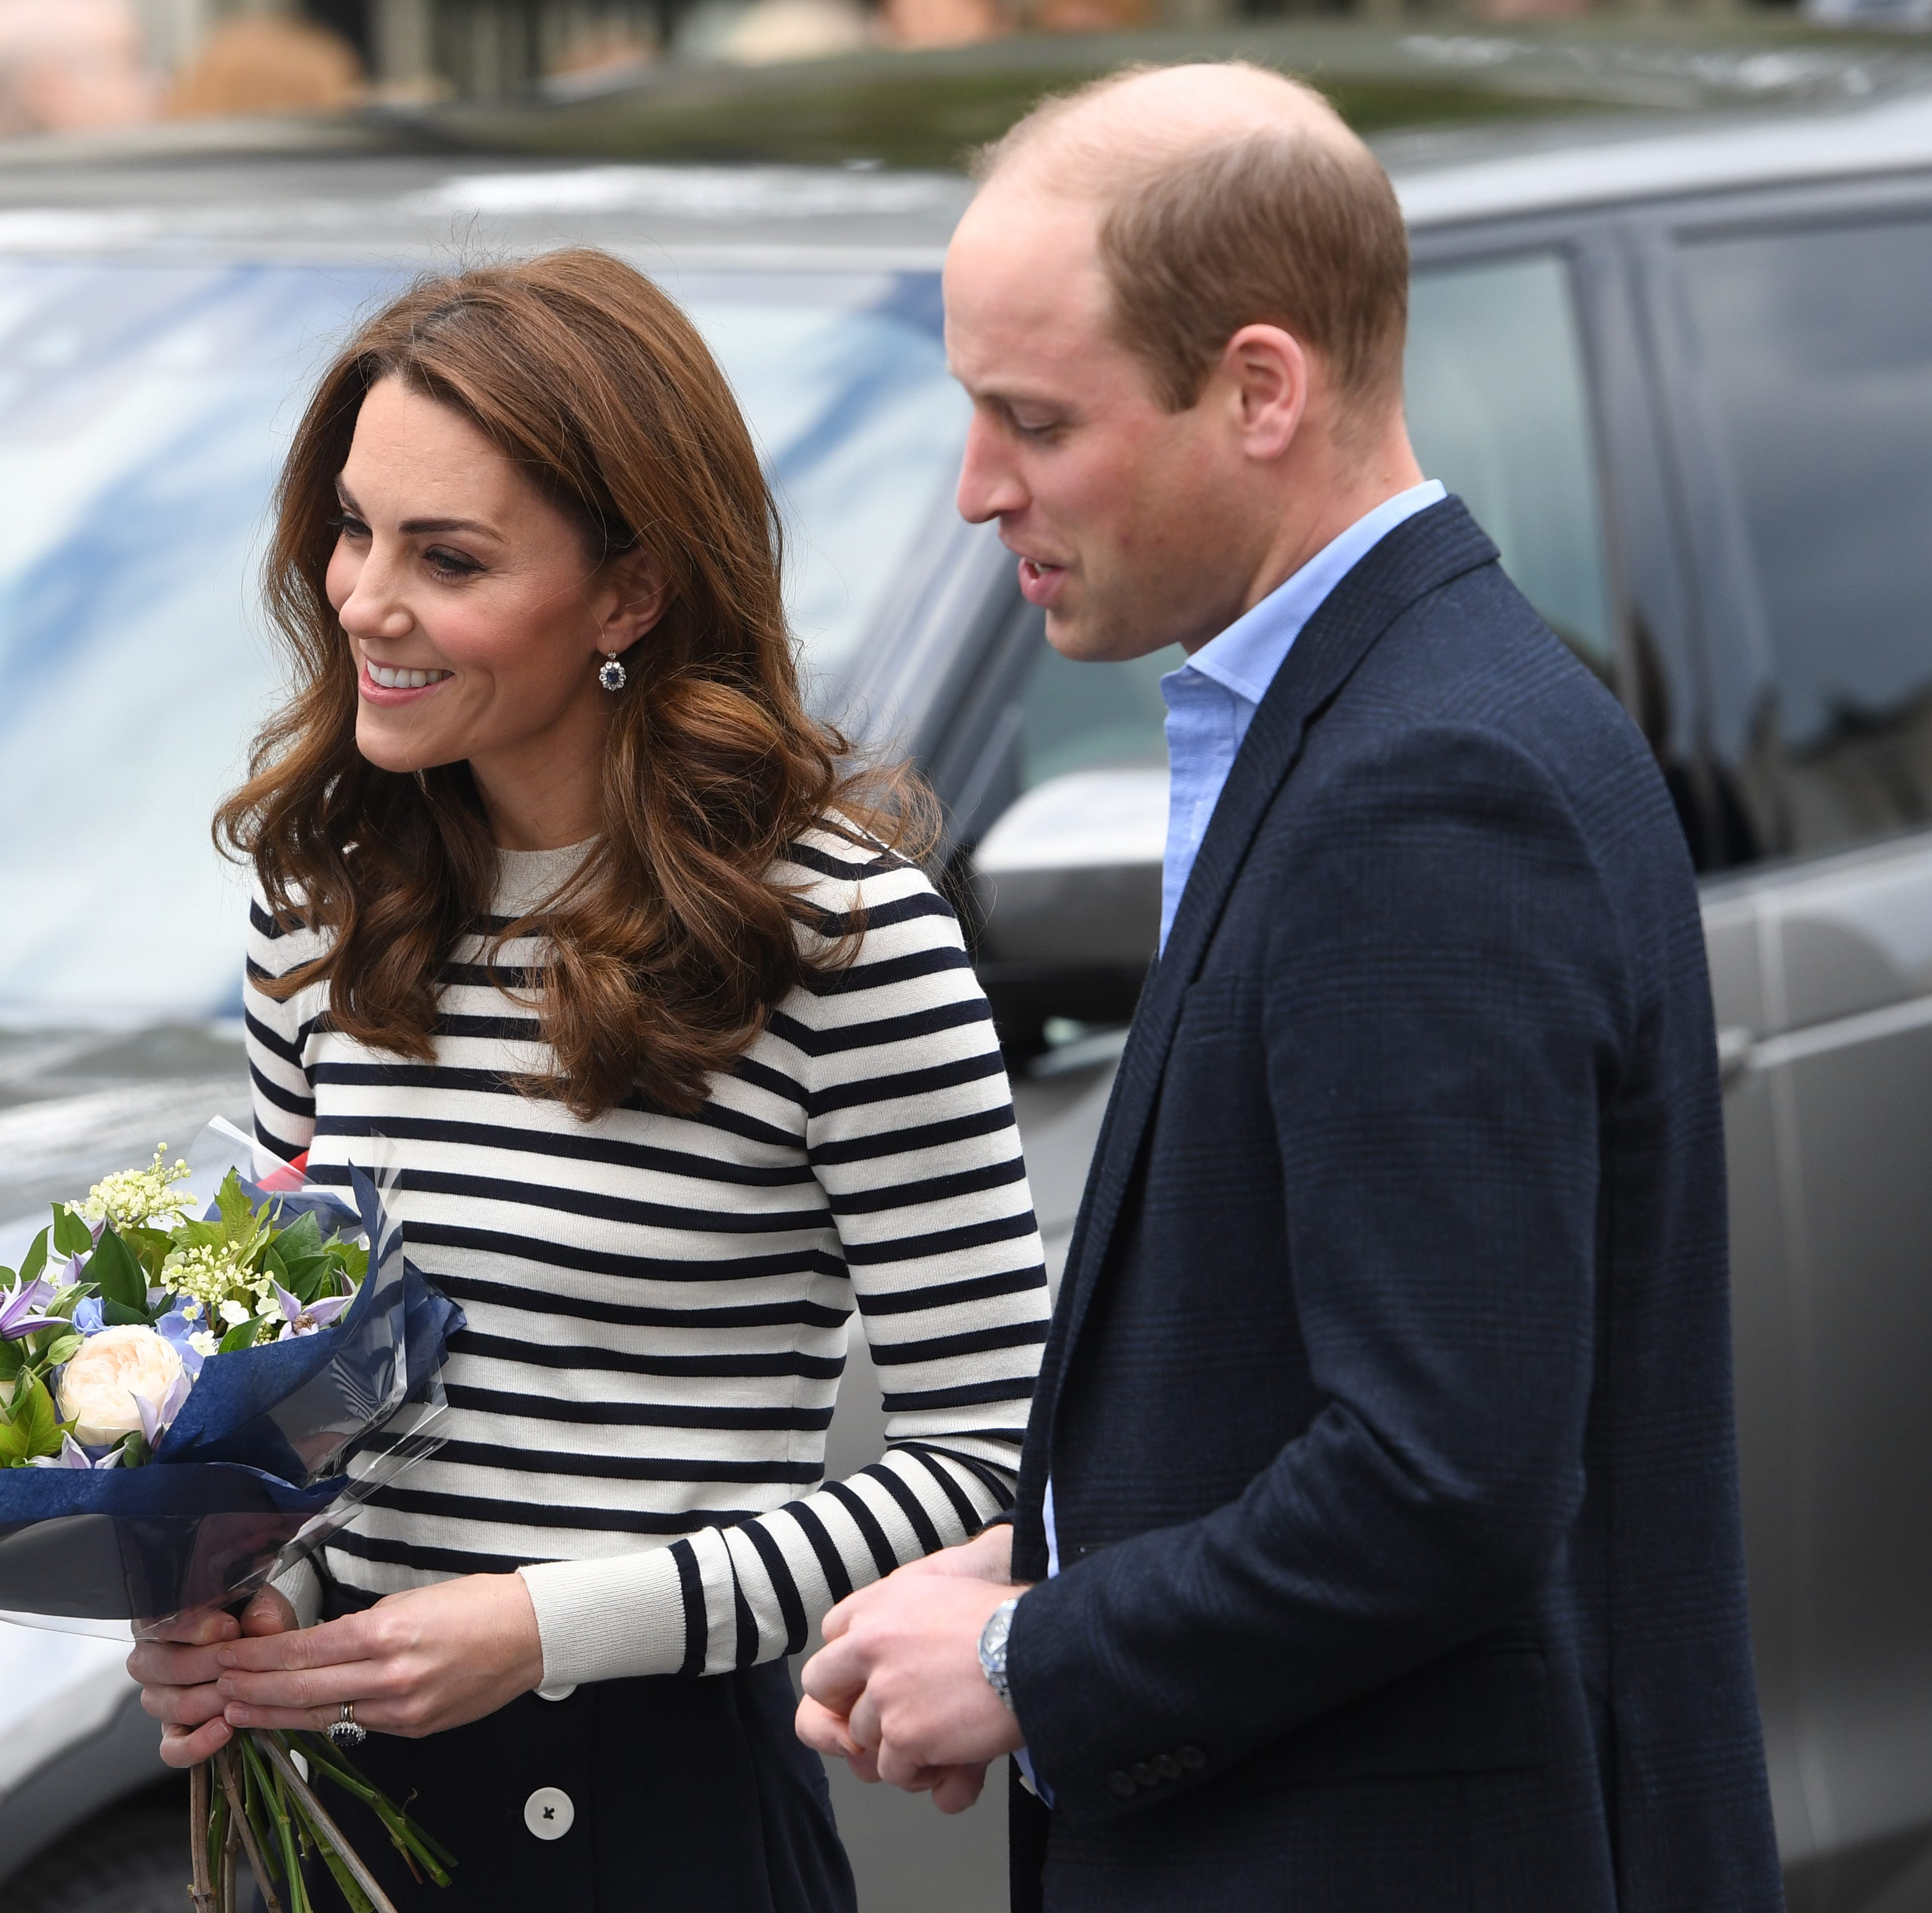 Prince William, Kate gush over the birth of Harry and Meghan's son